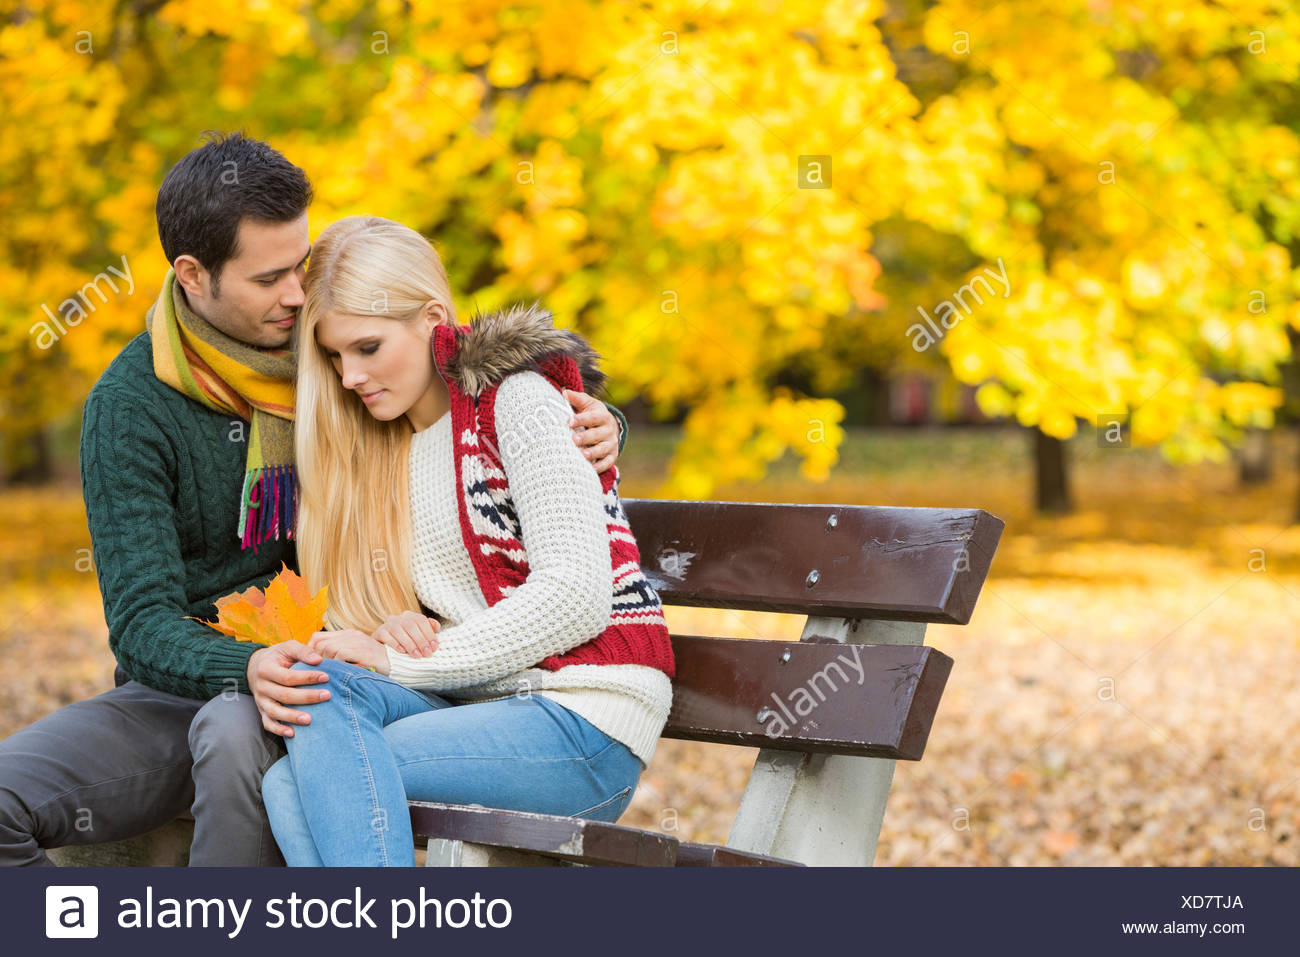 Loving young man hugging shy woman on park bench during autumn - Stock Image